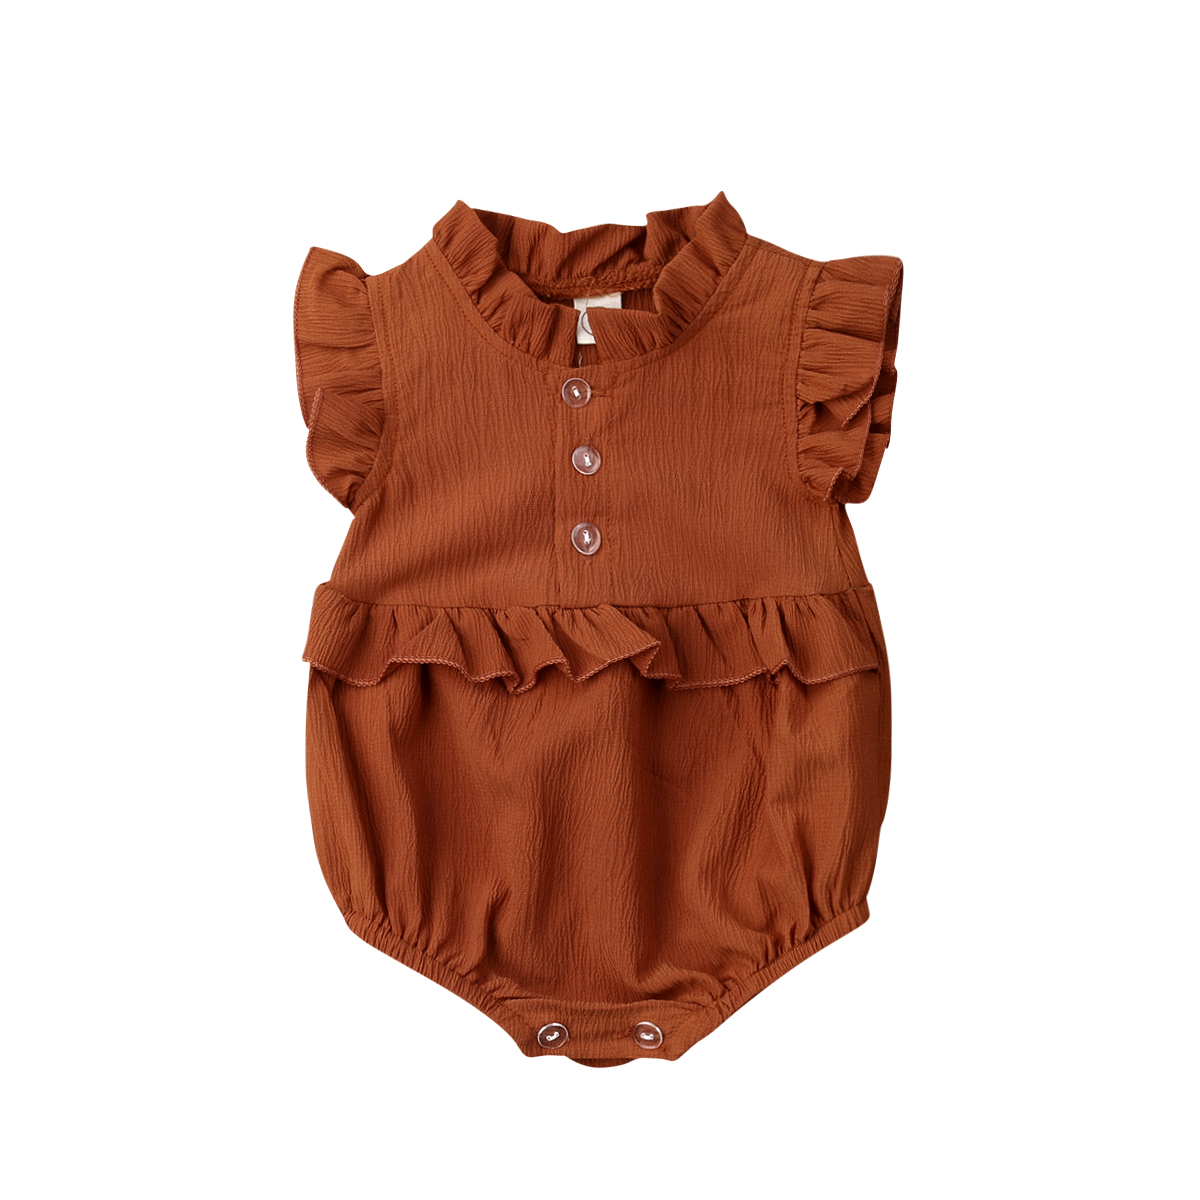 0-24 Months Cute Baby Clothes Yellow Sleeveless Chiffon Baby Bodysuits Summer Button Baby Girls Clothes Newborn Set Jumpsuits